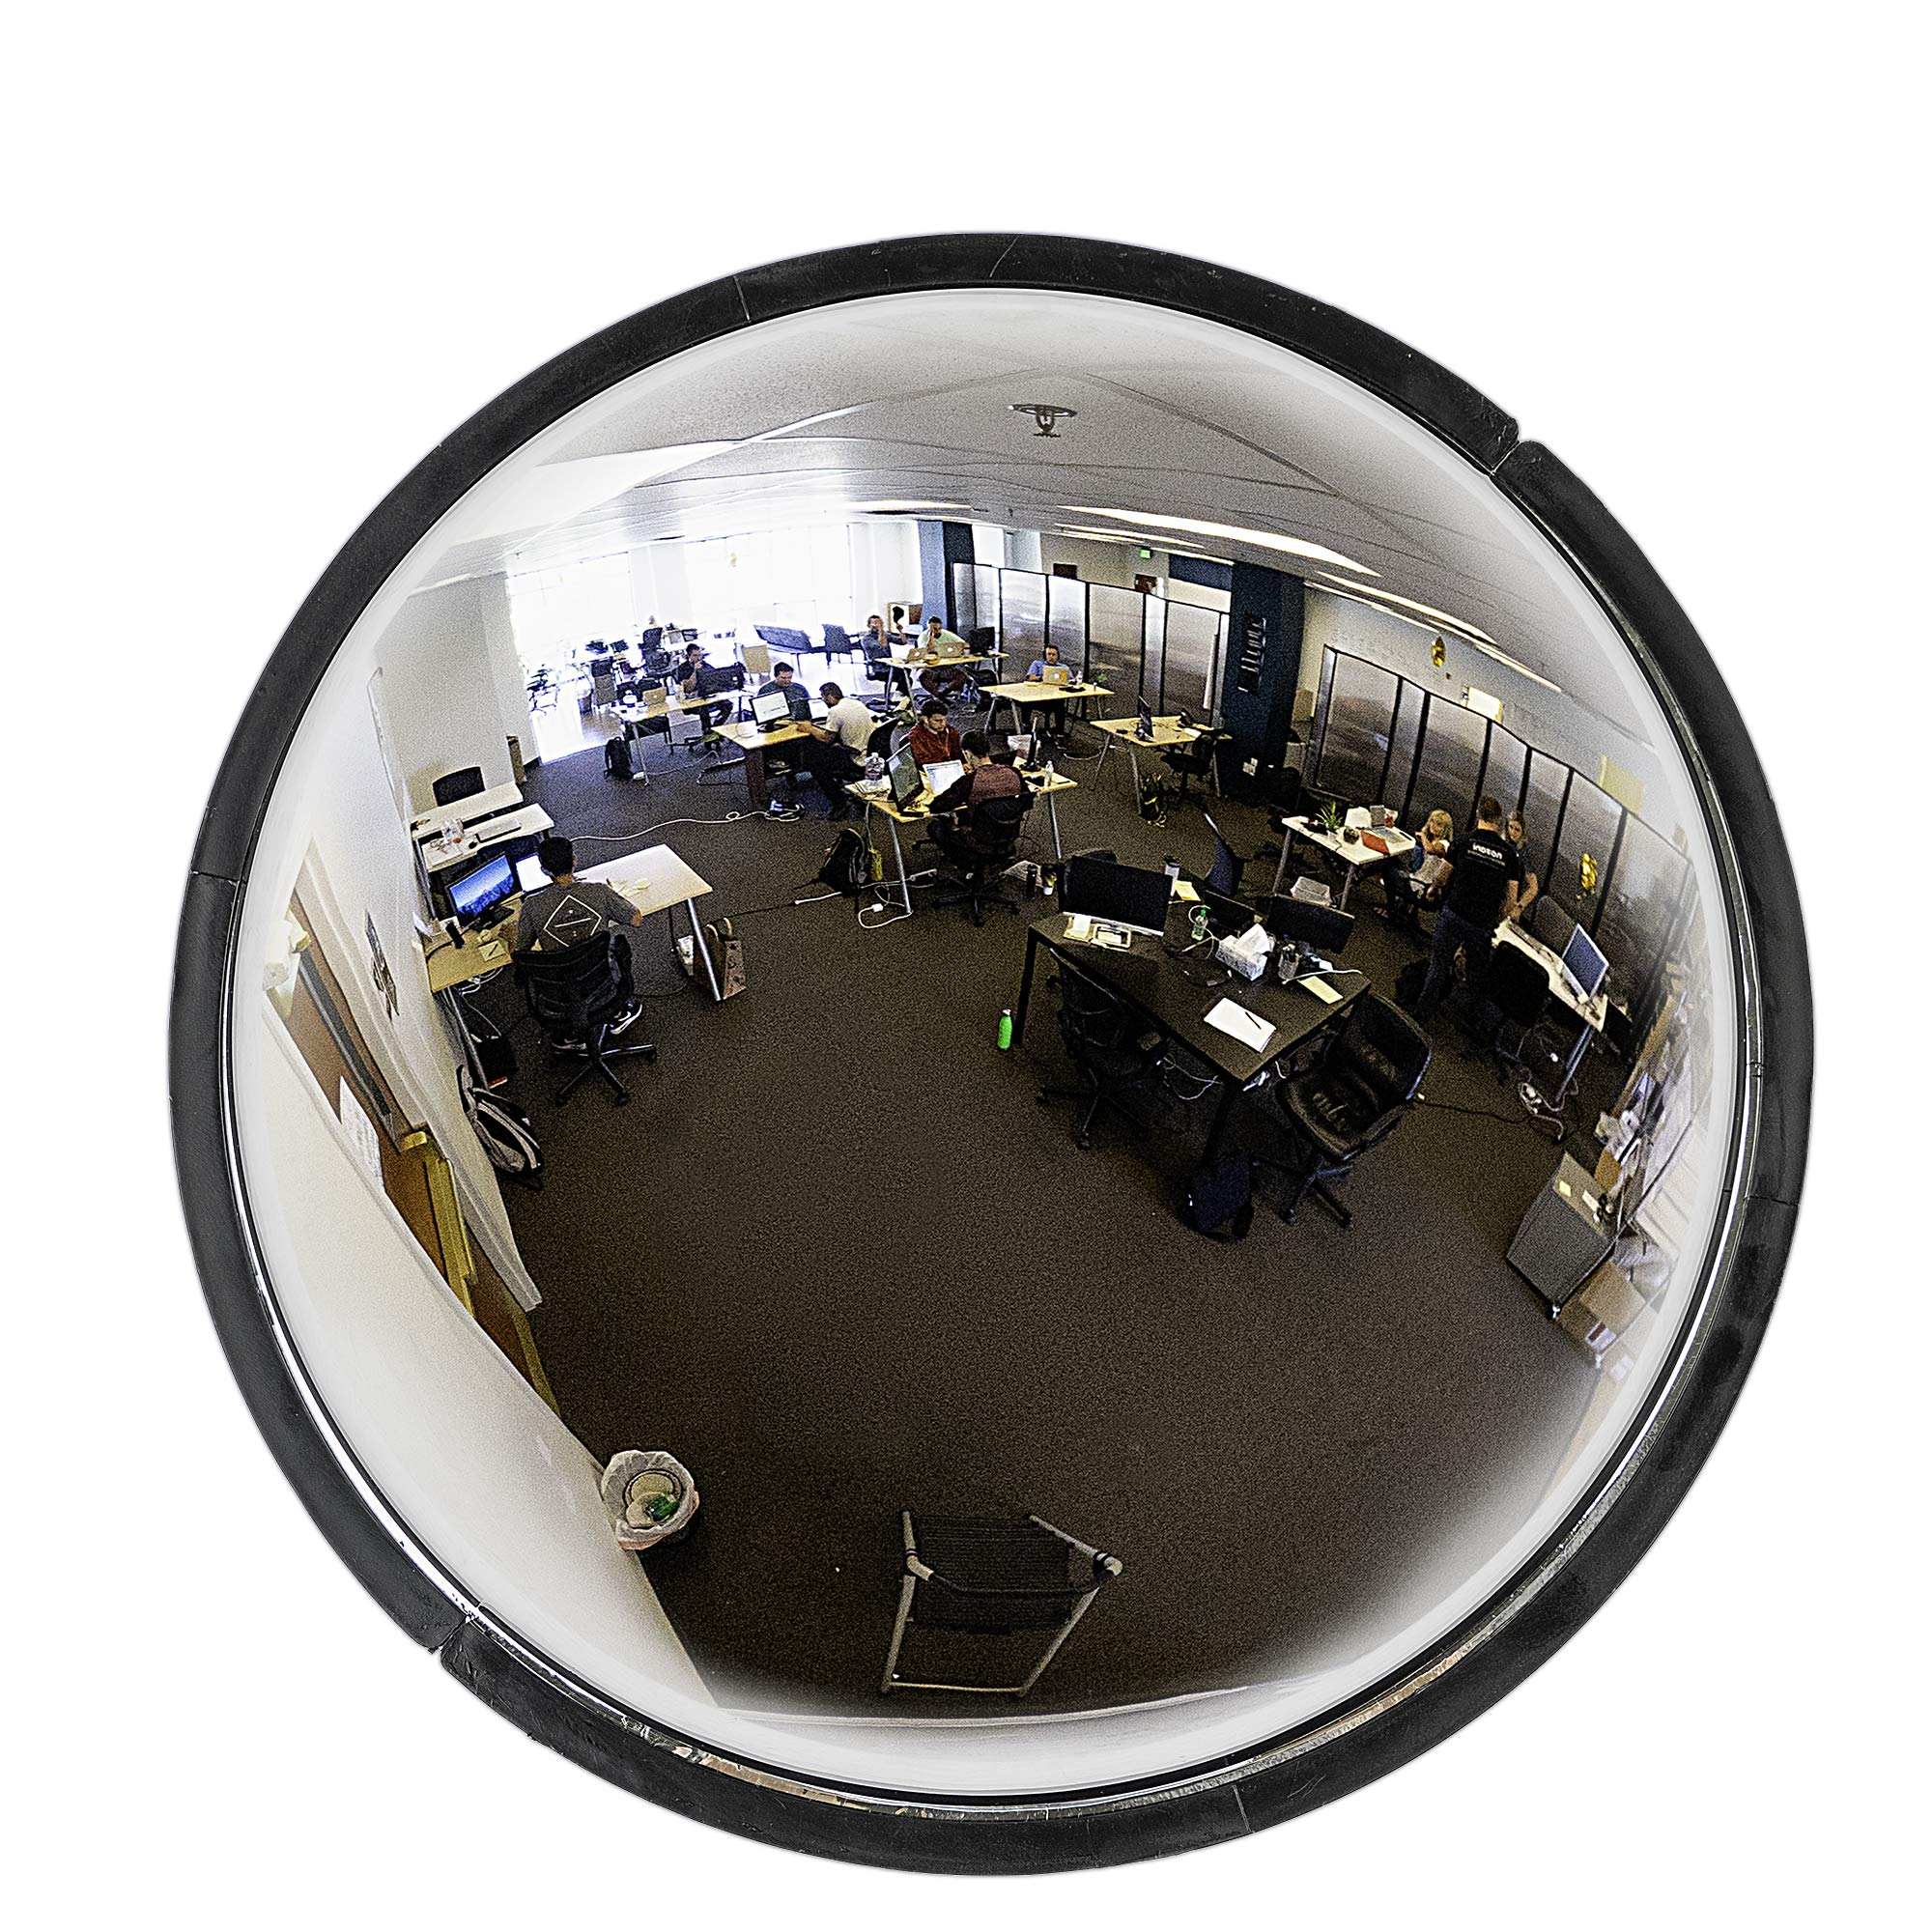 """18"""" Acrylic Bubble Dome Convex Mirror, Round Indoor Security Mirror for Driveway Safety Spots, Outdoor Warehouse Side View, Circular Wall Mirror for Office Use - Vision Metalizers by Vision Metalizers (Image #1)"""